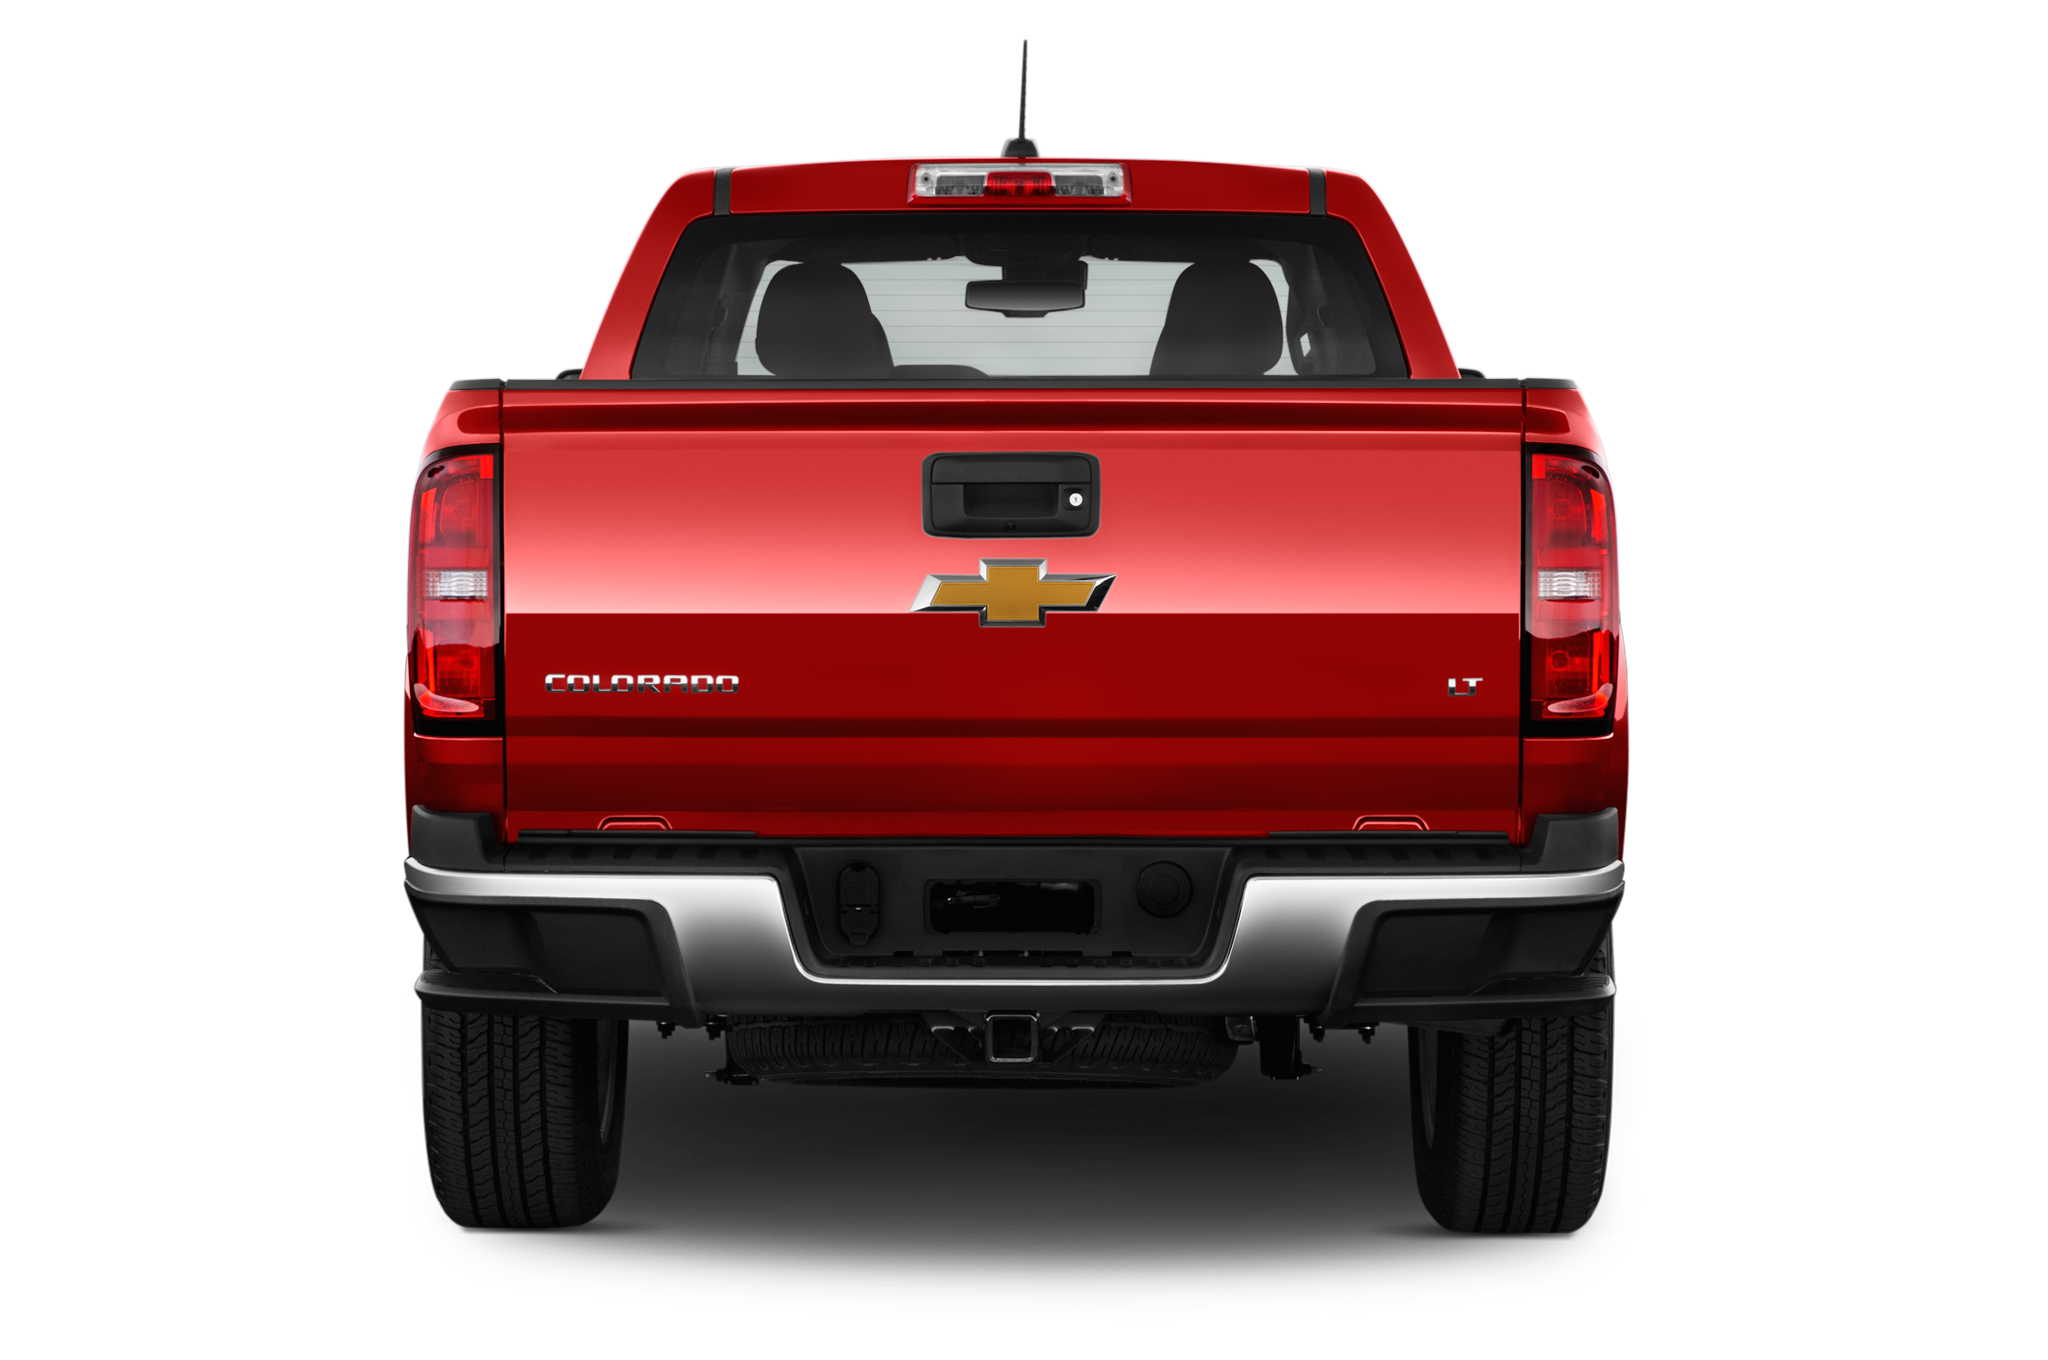 Seven Details That Make The 2017 Chevrolet Colorado Zr2 Special 2015 Chevy Silverado Rear Junction Block 14 125